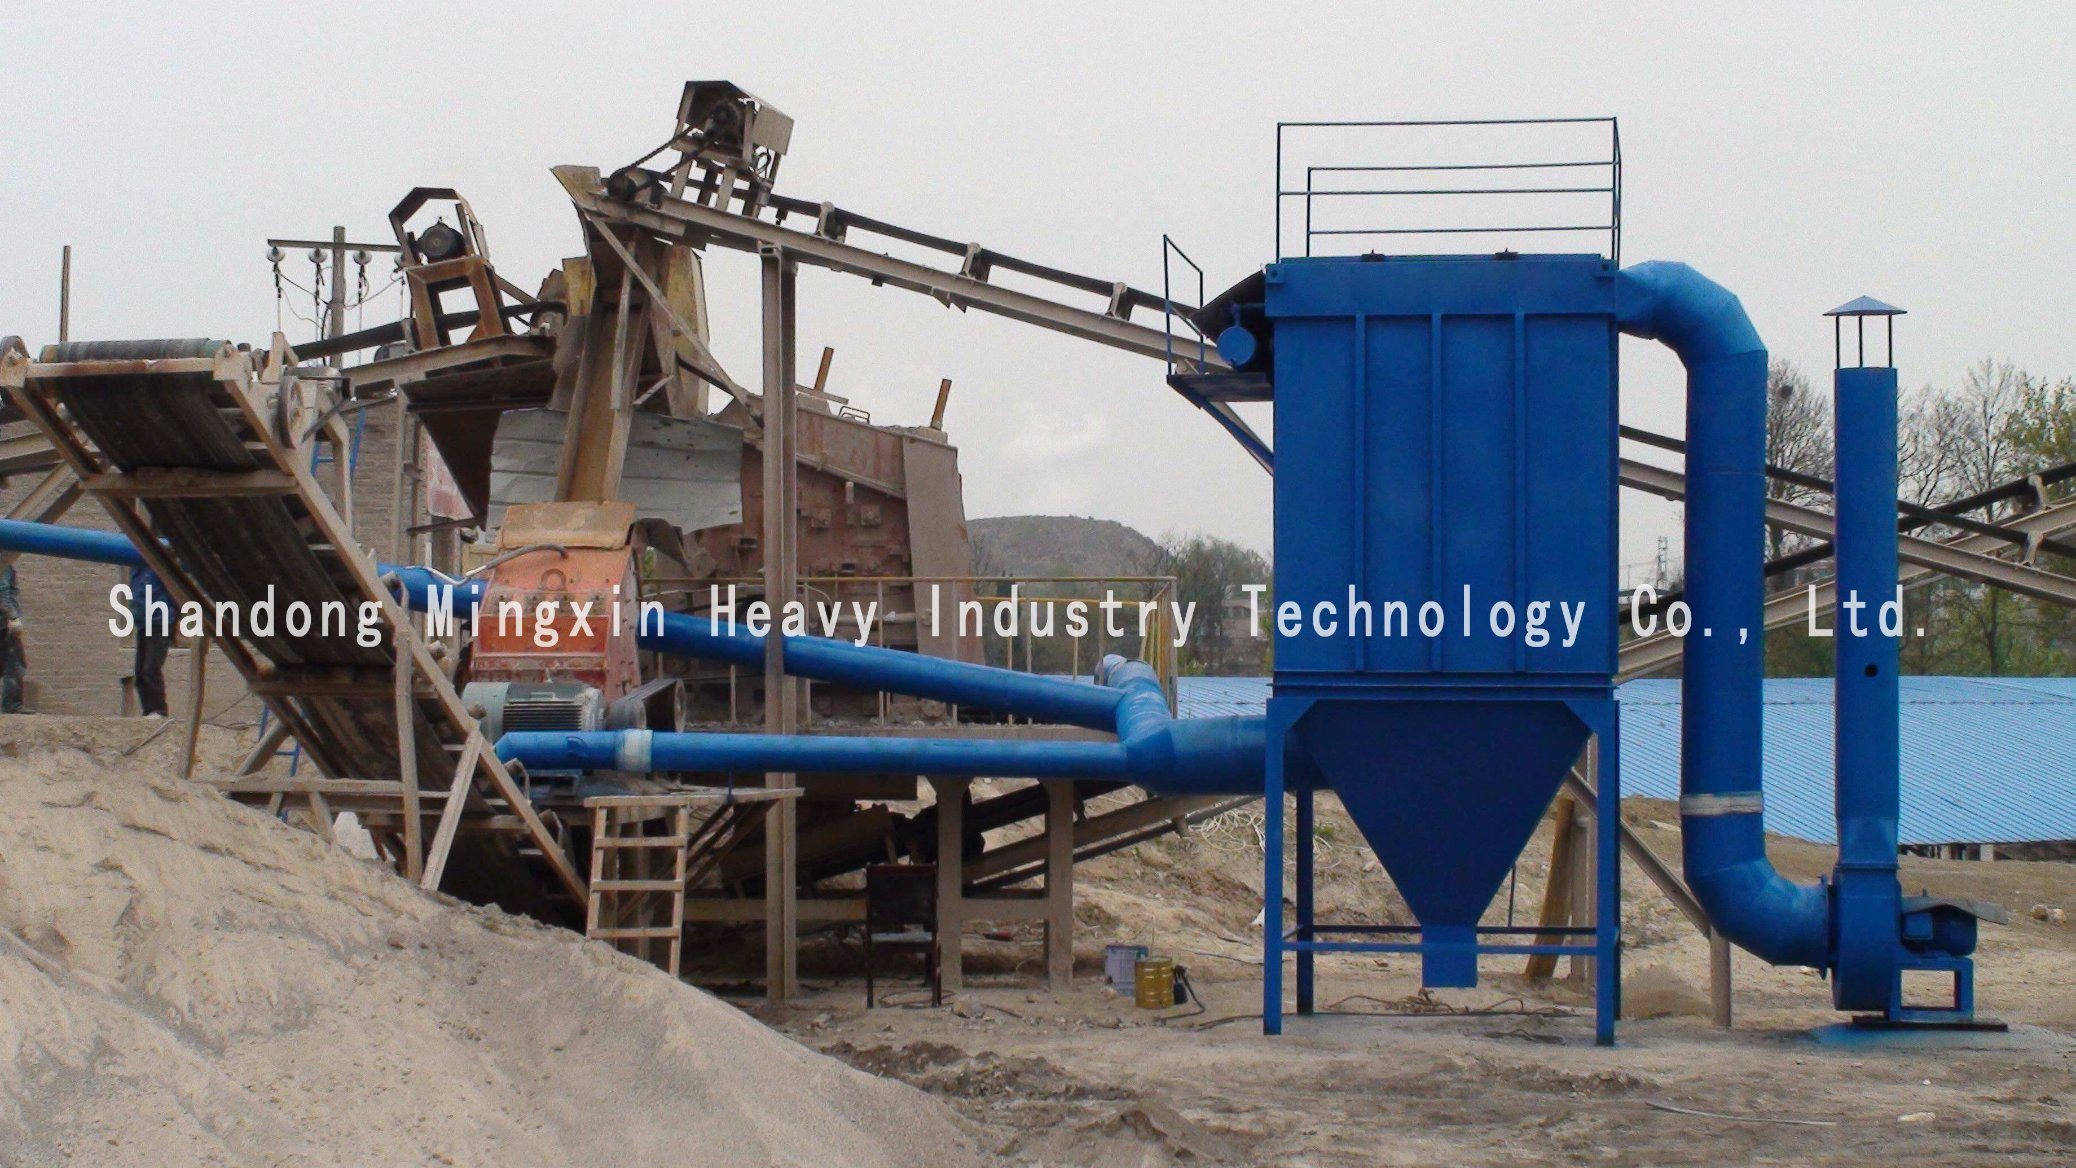 DMC (HDMC) - Single Bag Dust Collector Made in China